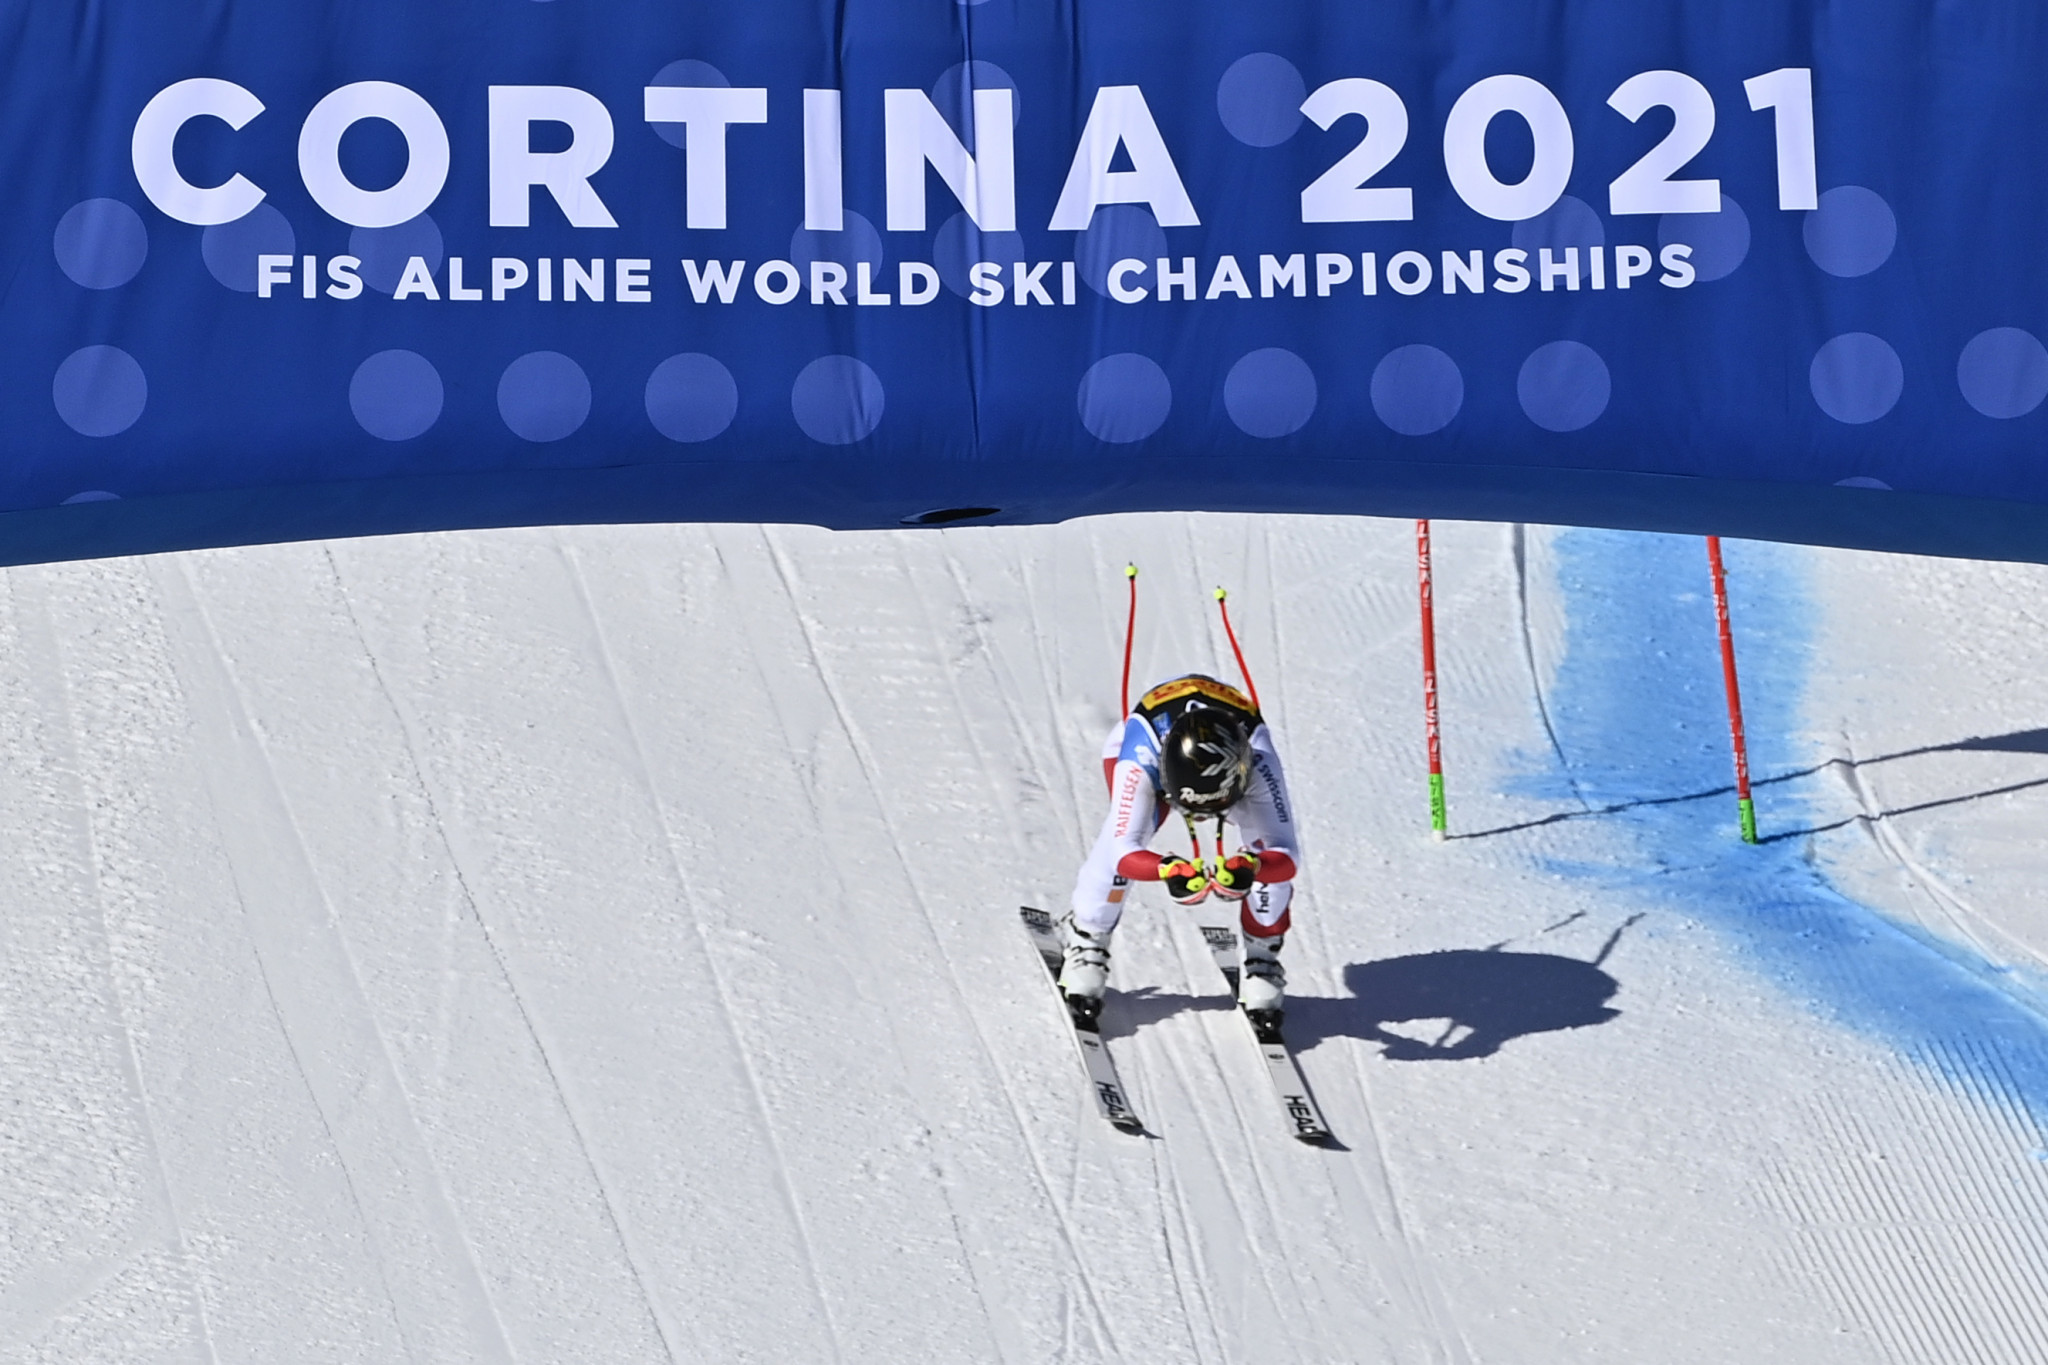 Lara Gut-Behrami triumphed in the women's super-G event as the FIS Alpine World Ski Championships finally got underway today in Cortina d'Ampezzo ©Getty Images